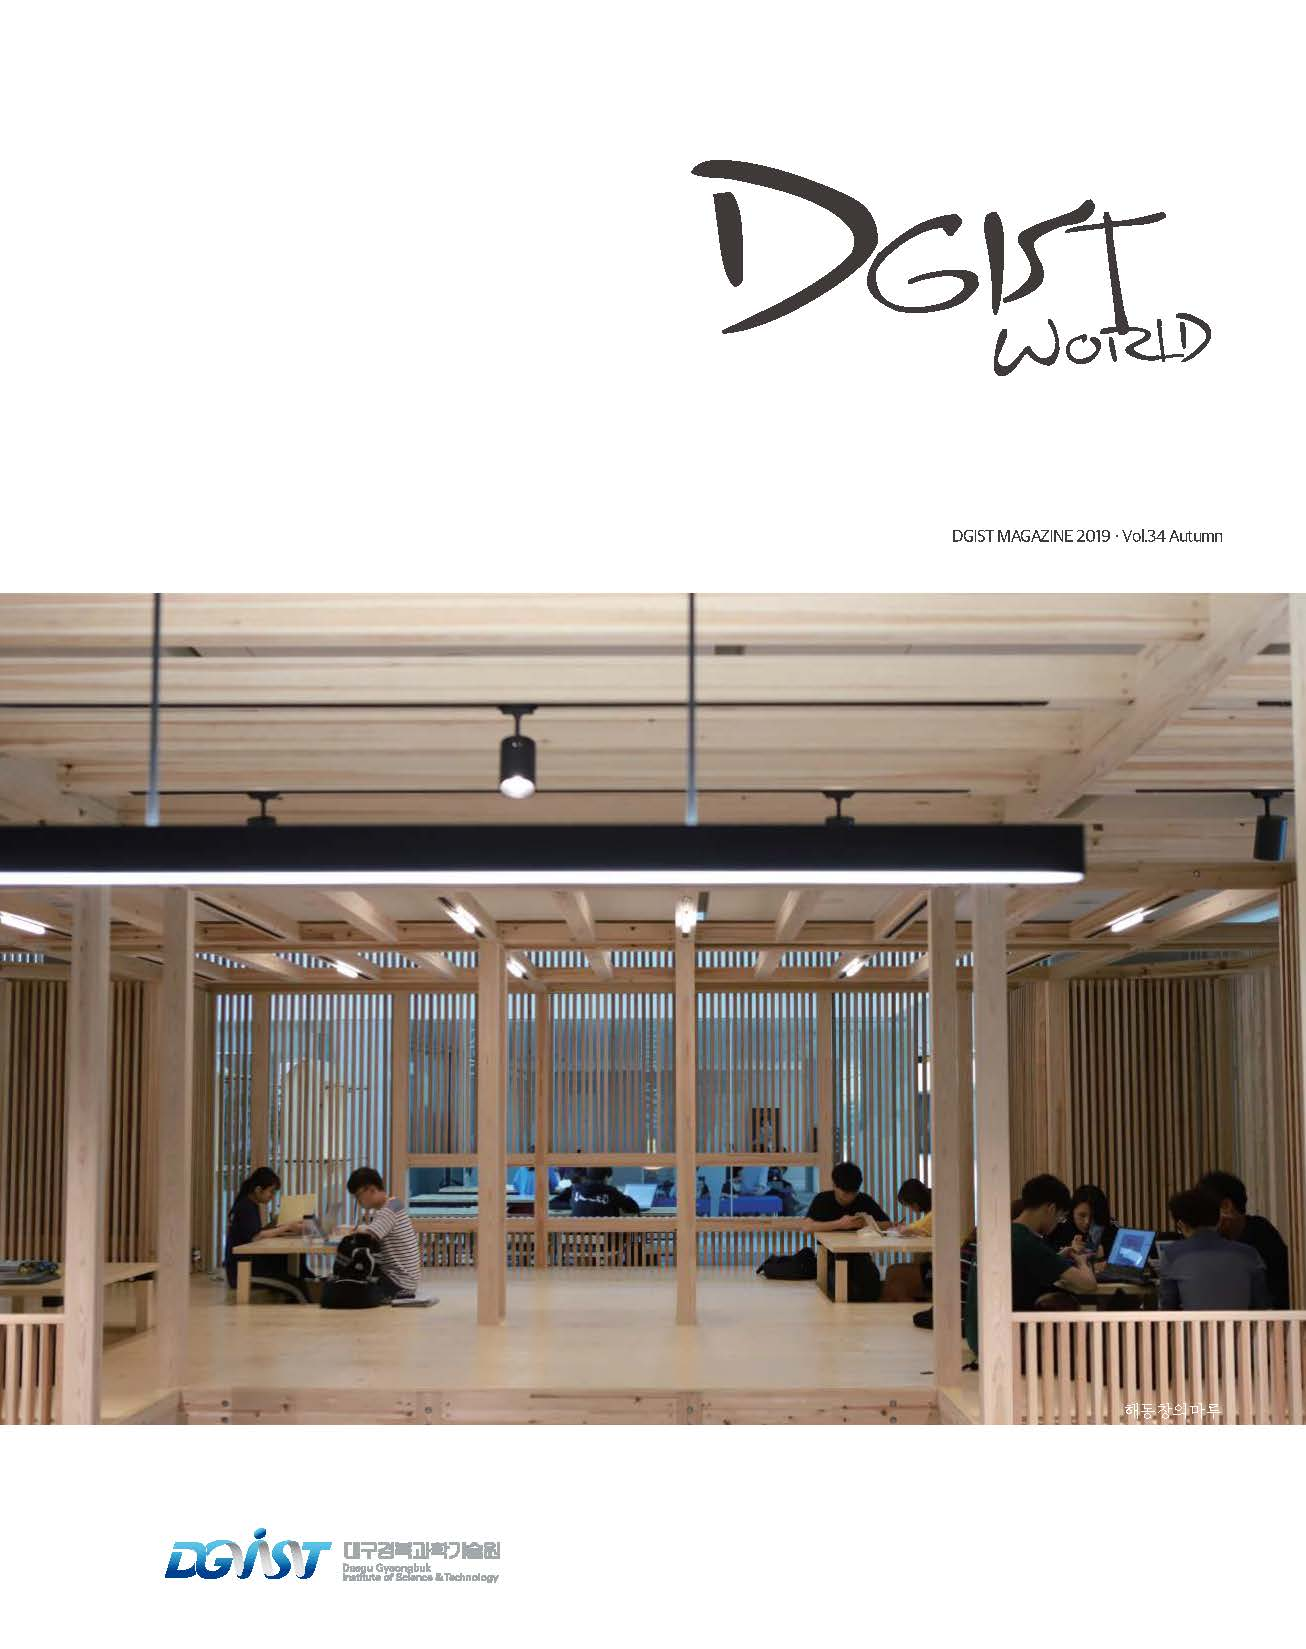 DGIST World_2019 vol.34 이미지